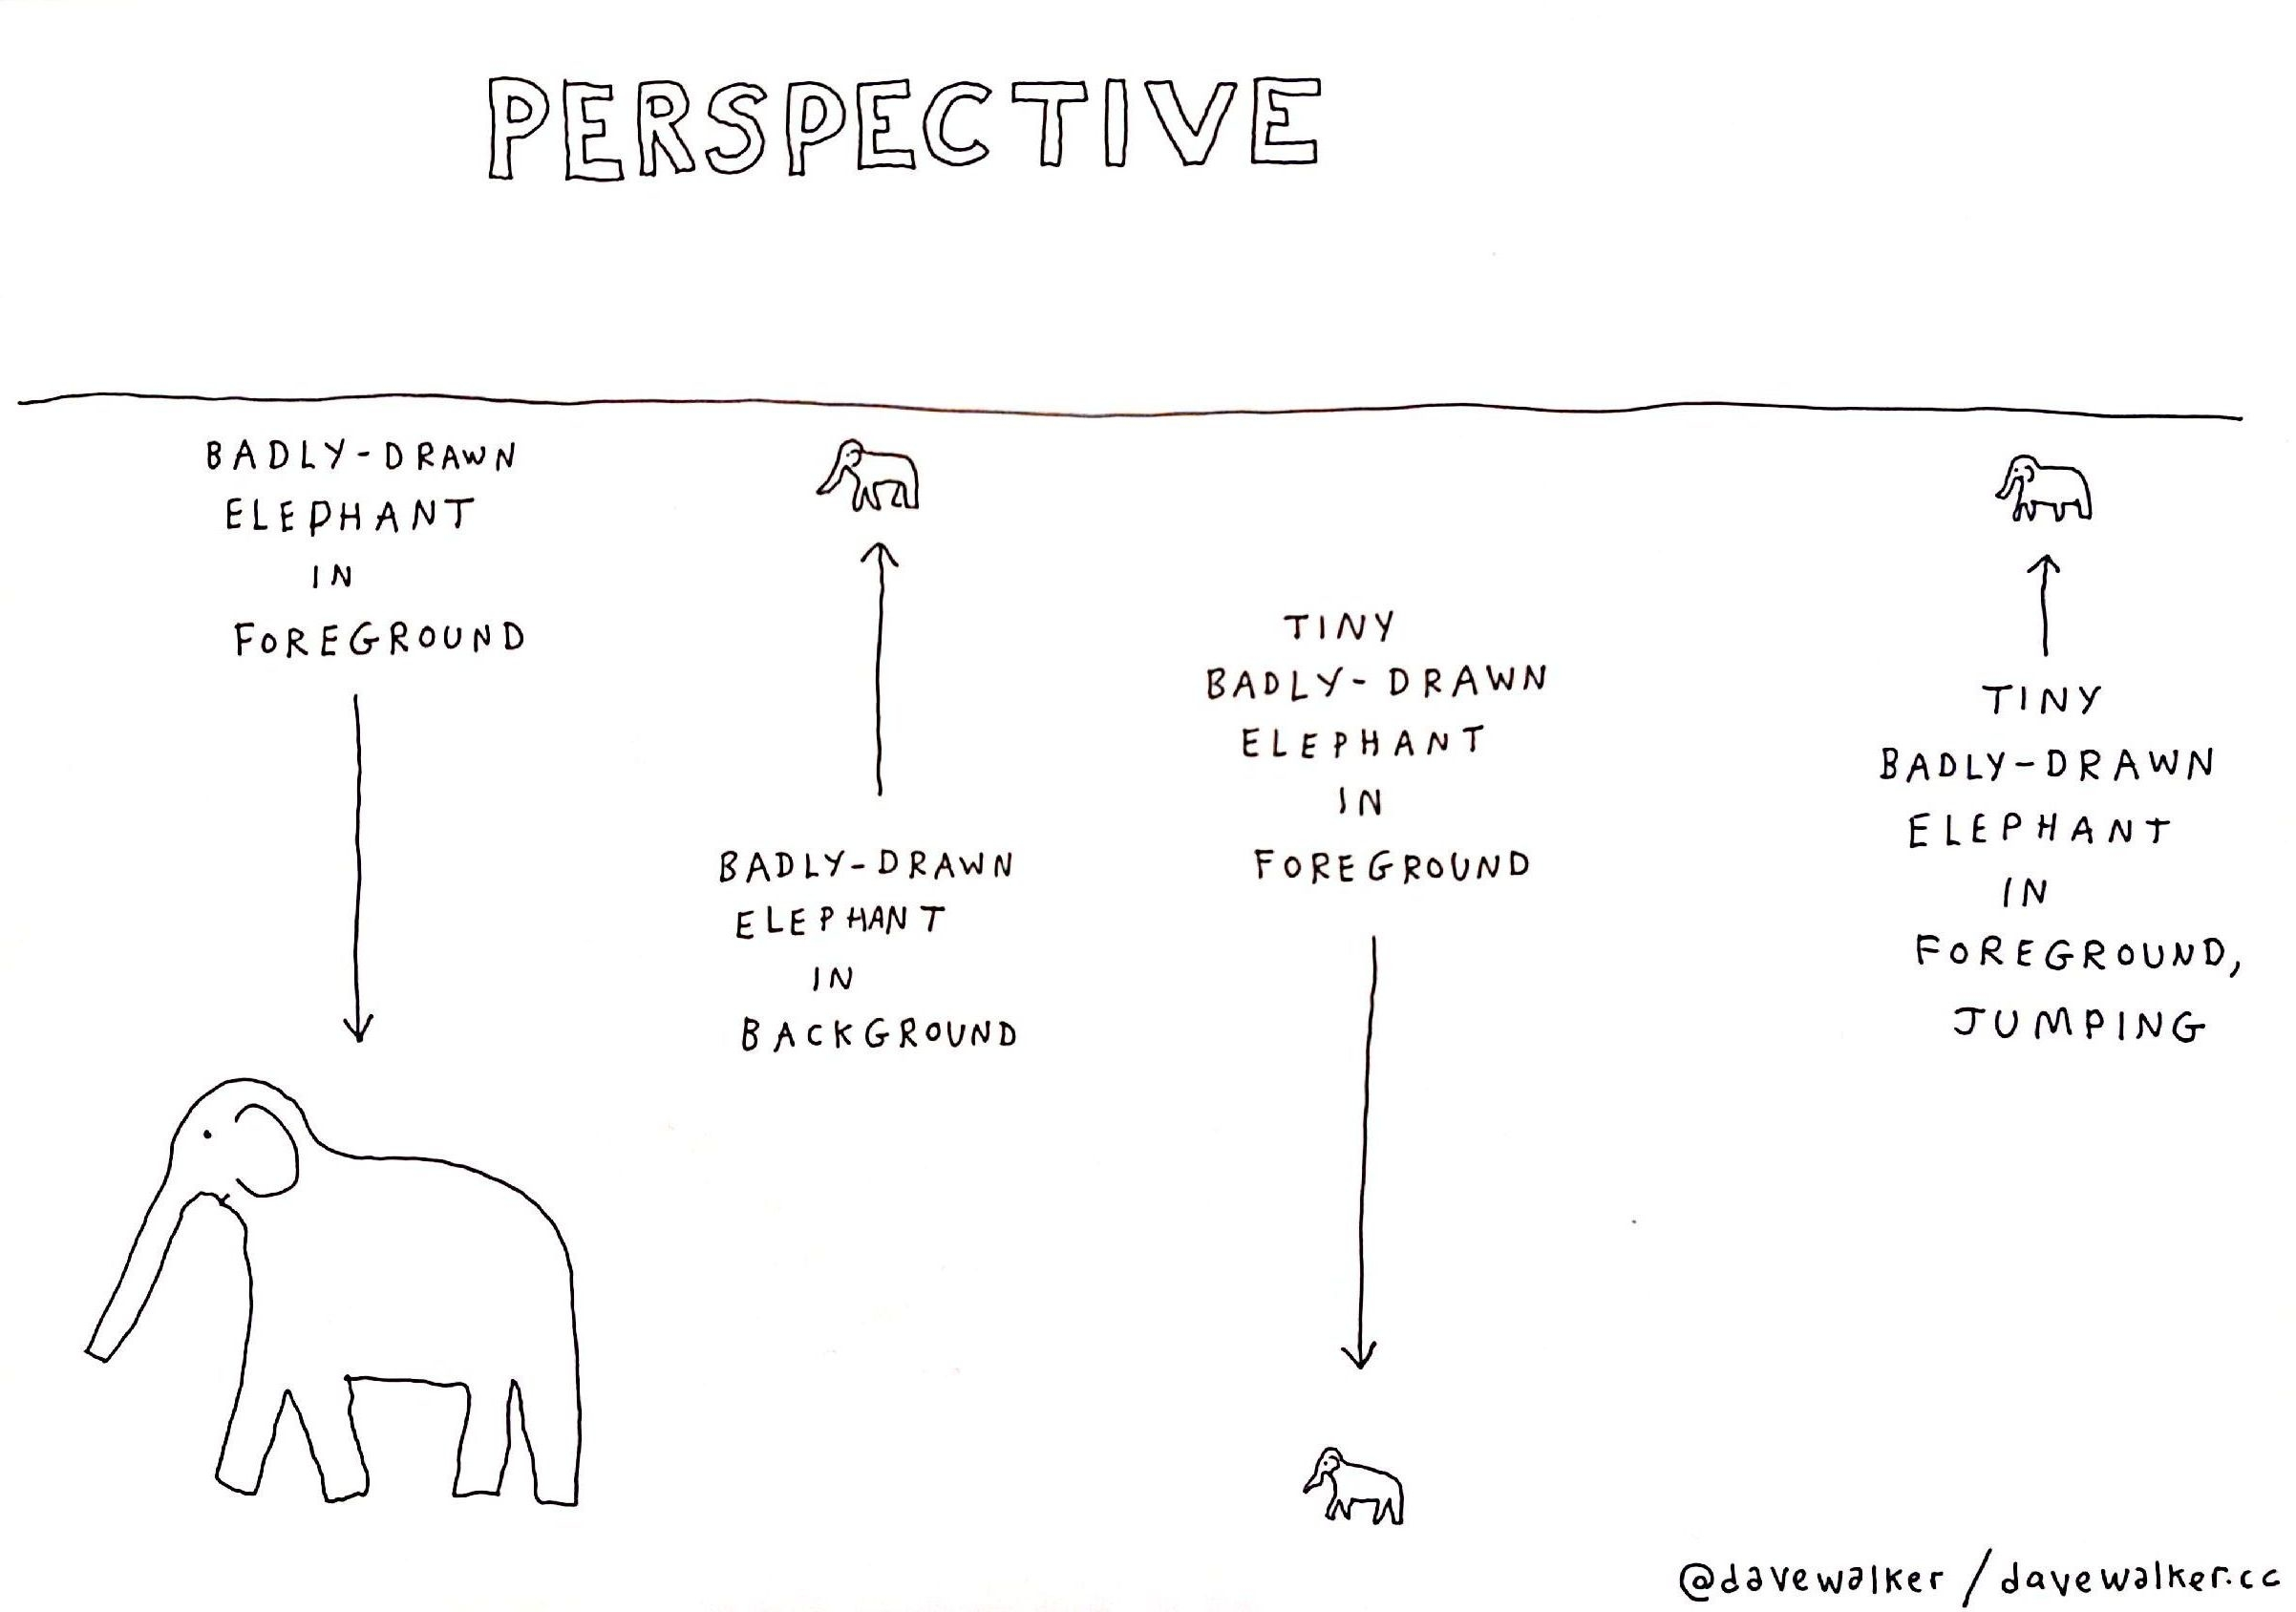 Perspective by Dave Walker